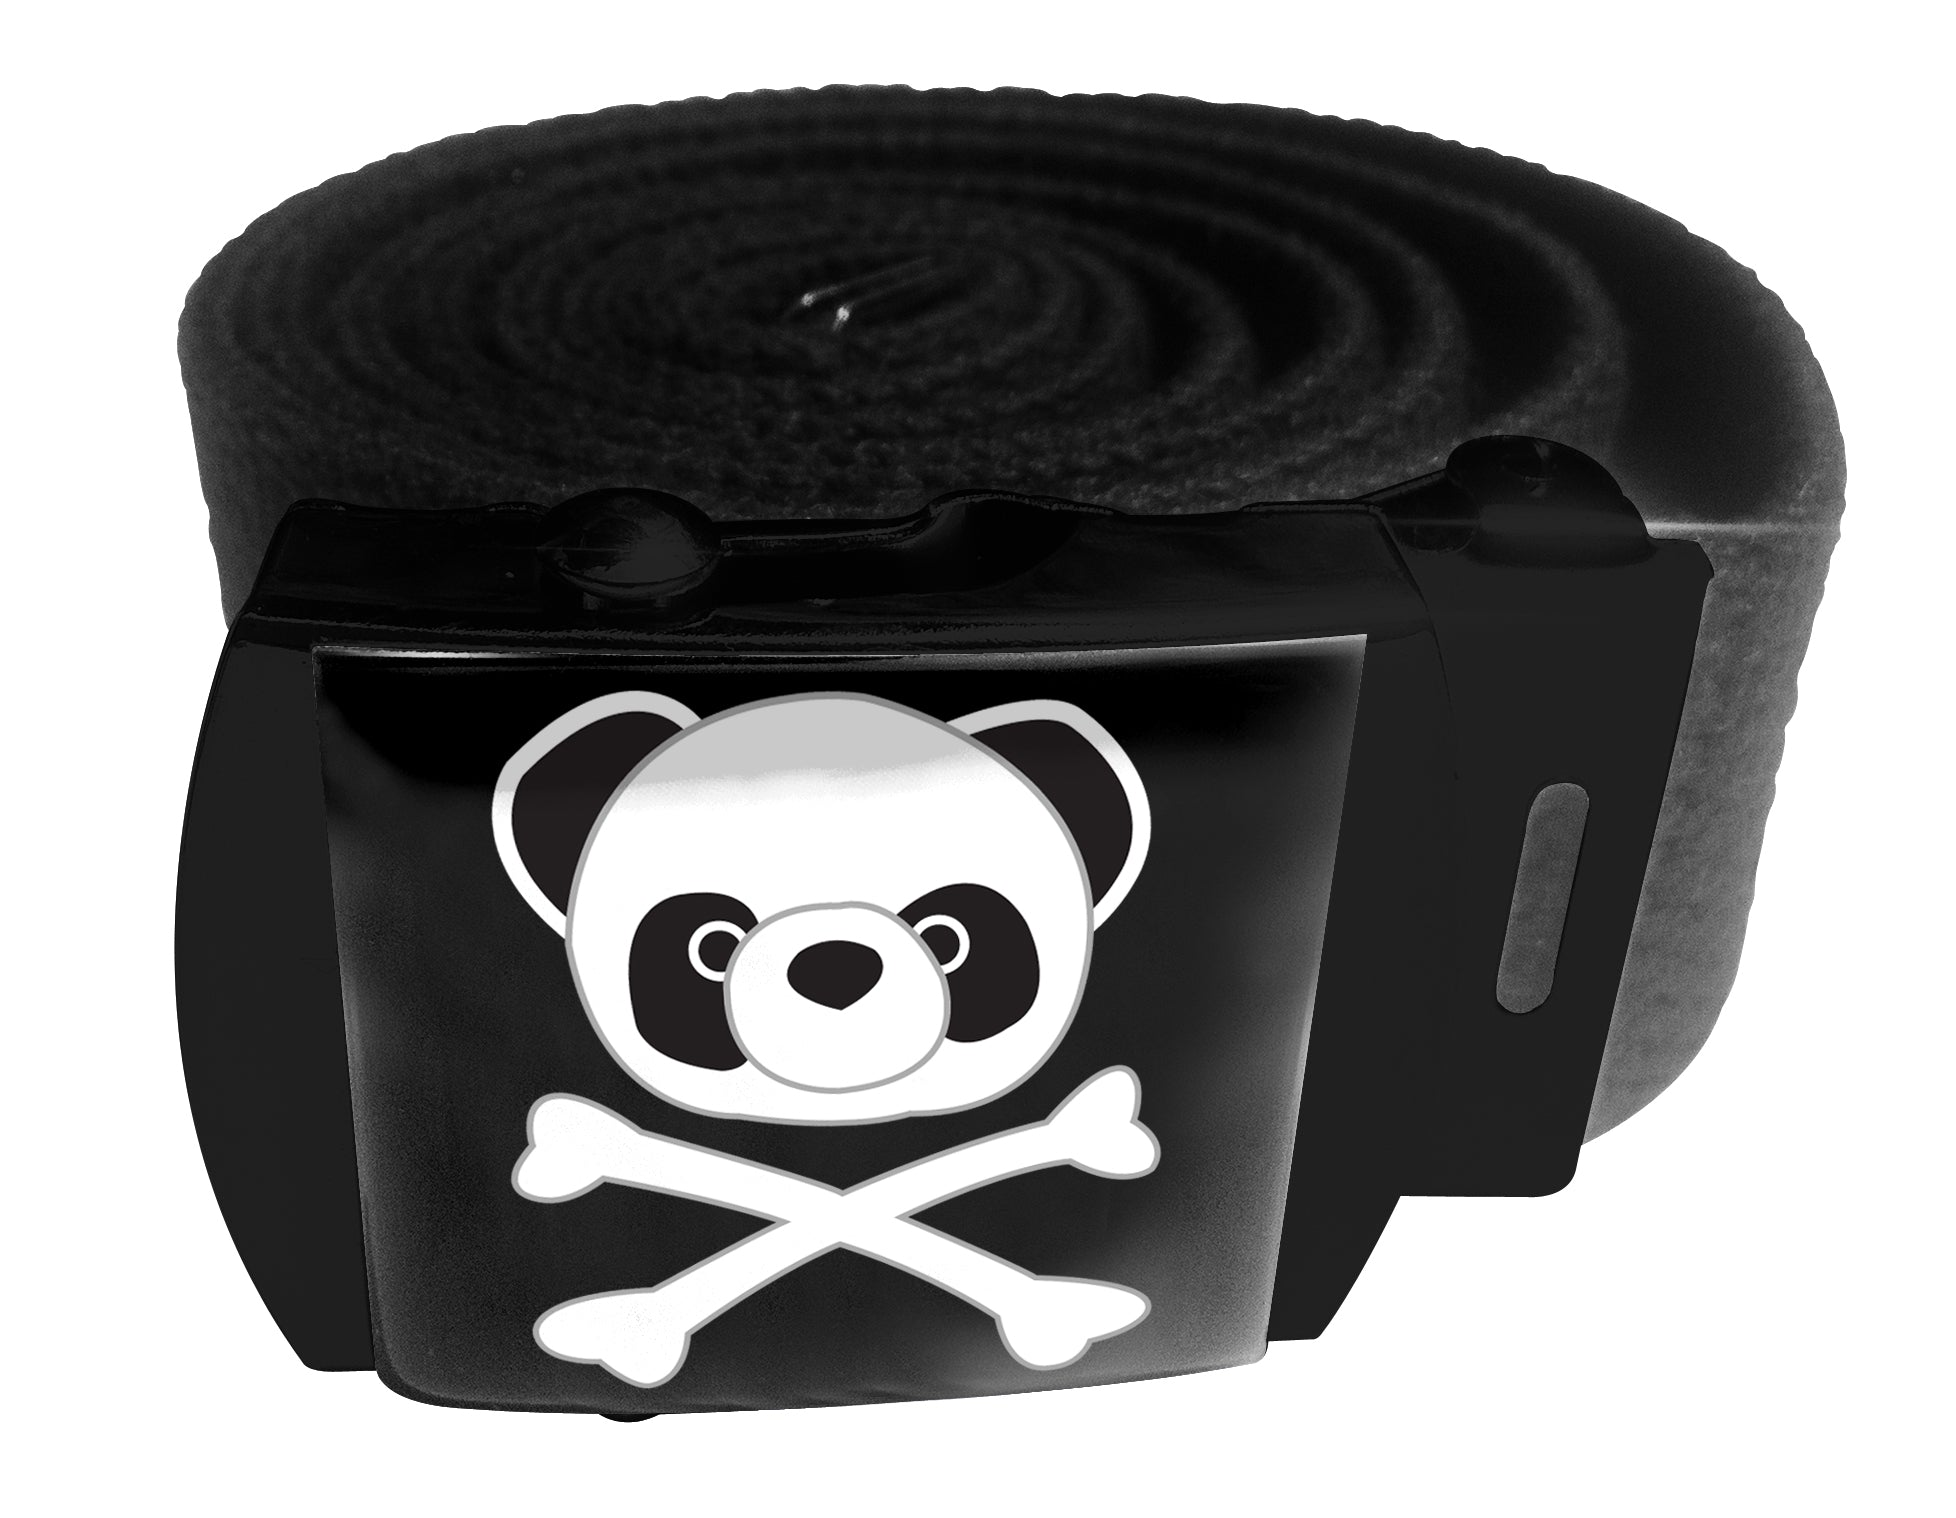 Pirate Panda Belt - By Ex-Boyfriend